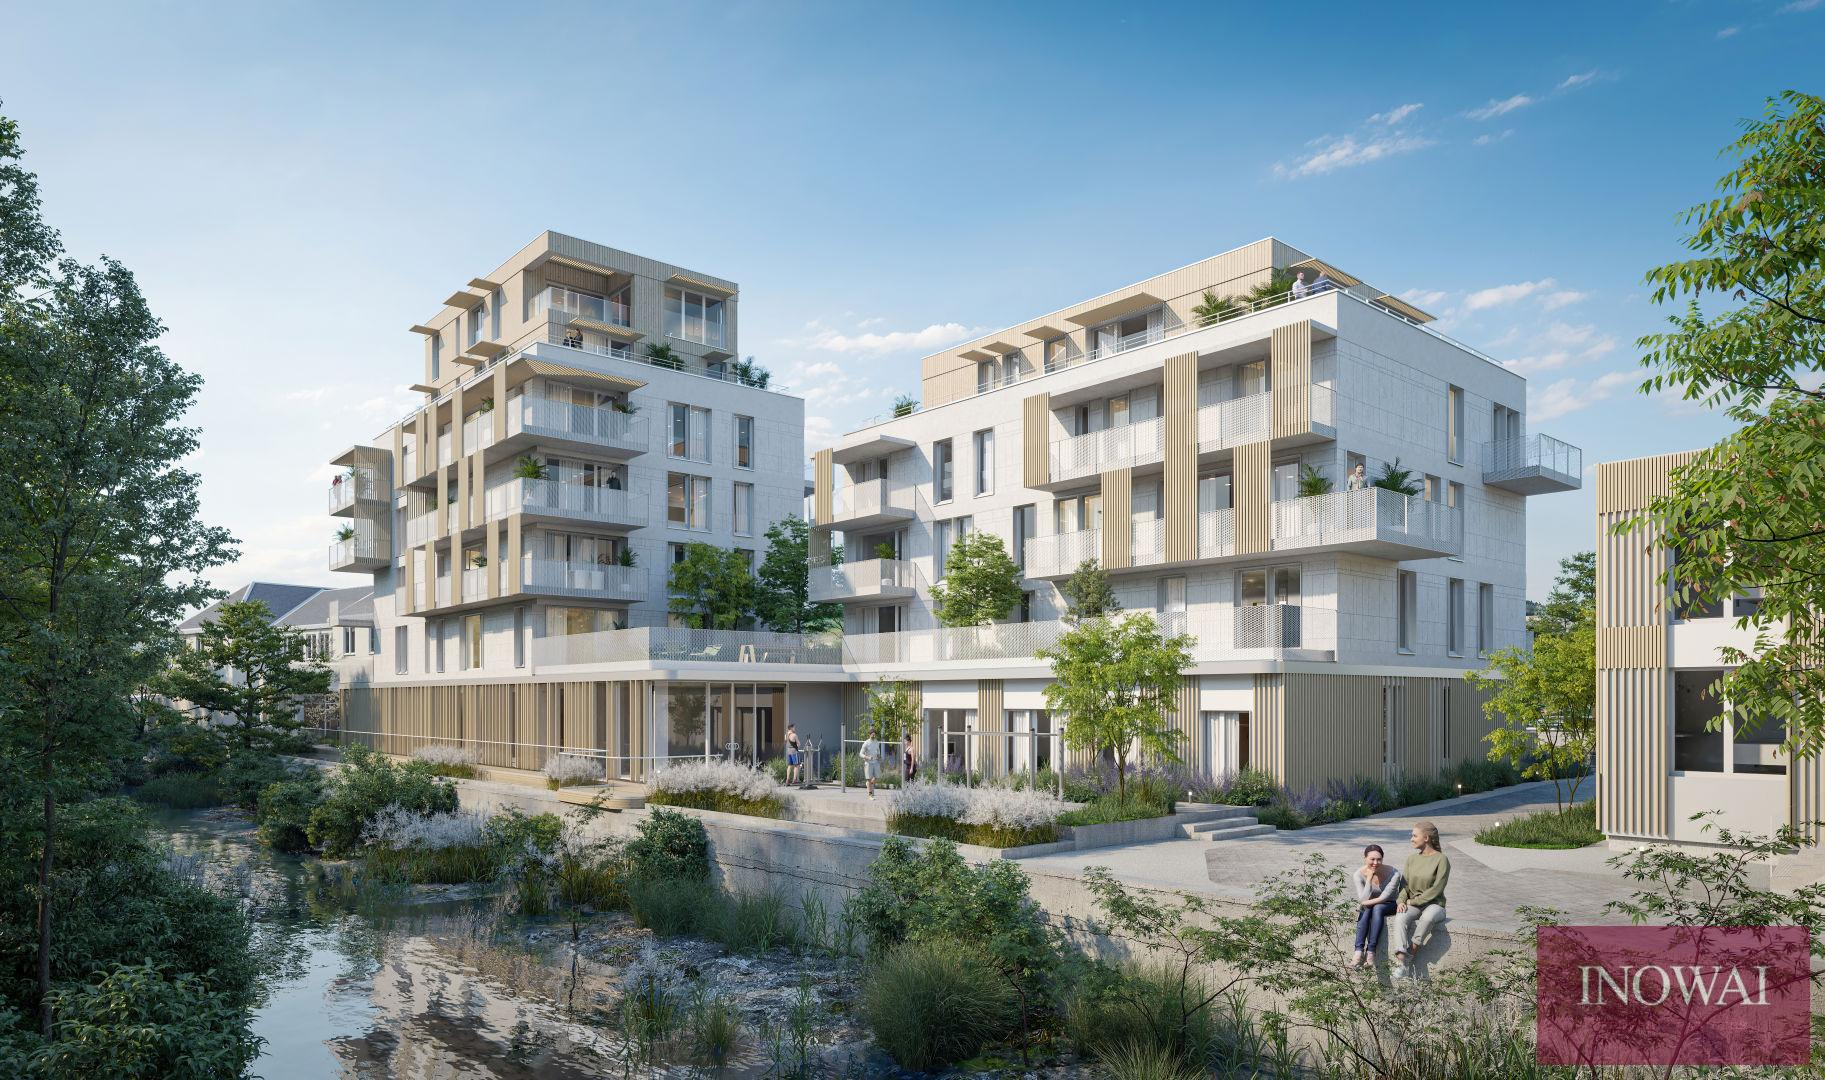 Appartement 9 chambres - projet RIVER PLACE